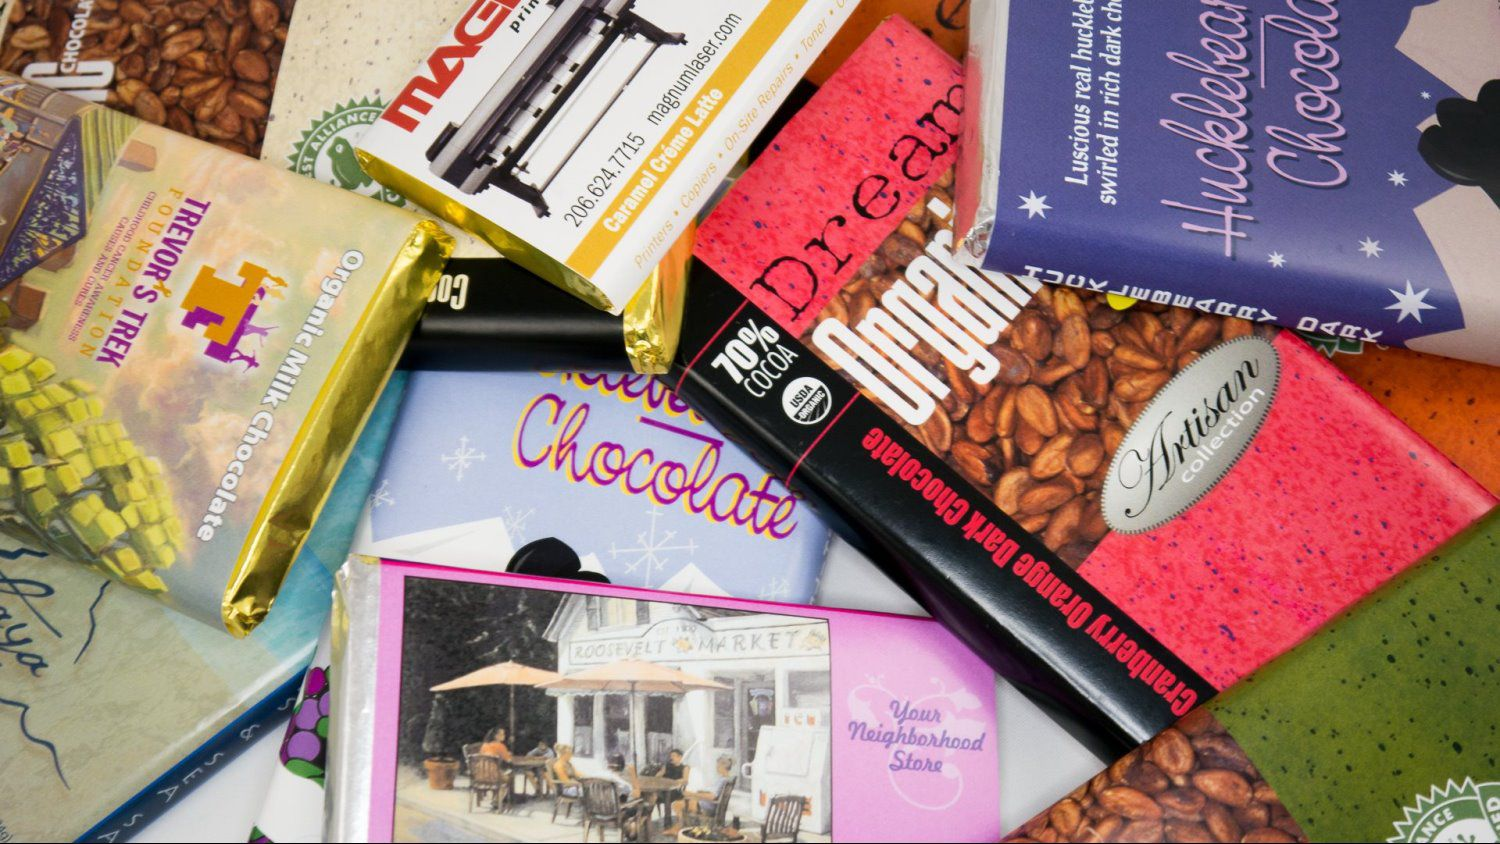 Custom Label Chocolate Bars - Dream Chocolate